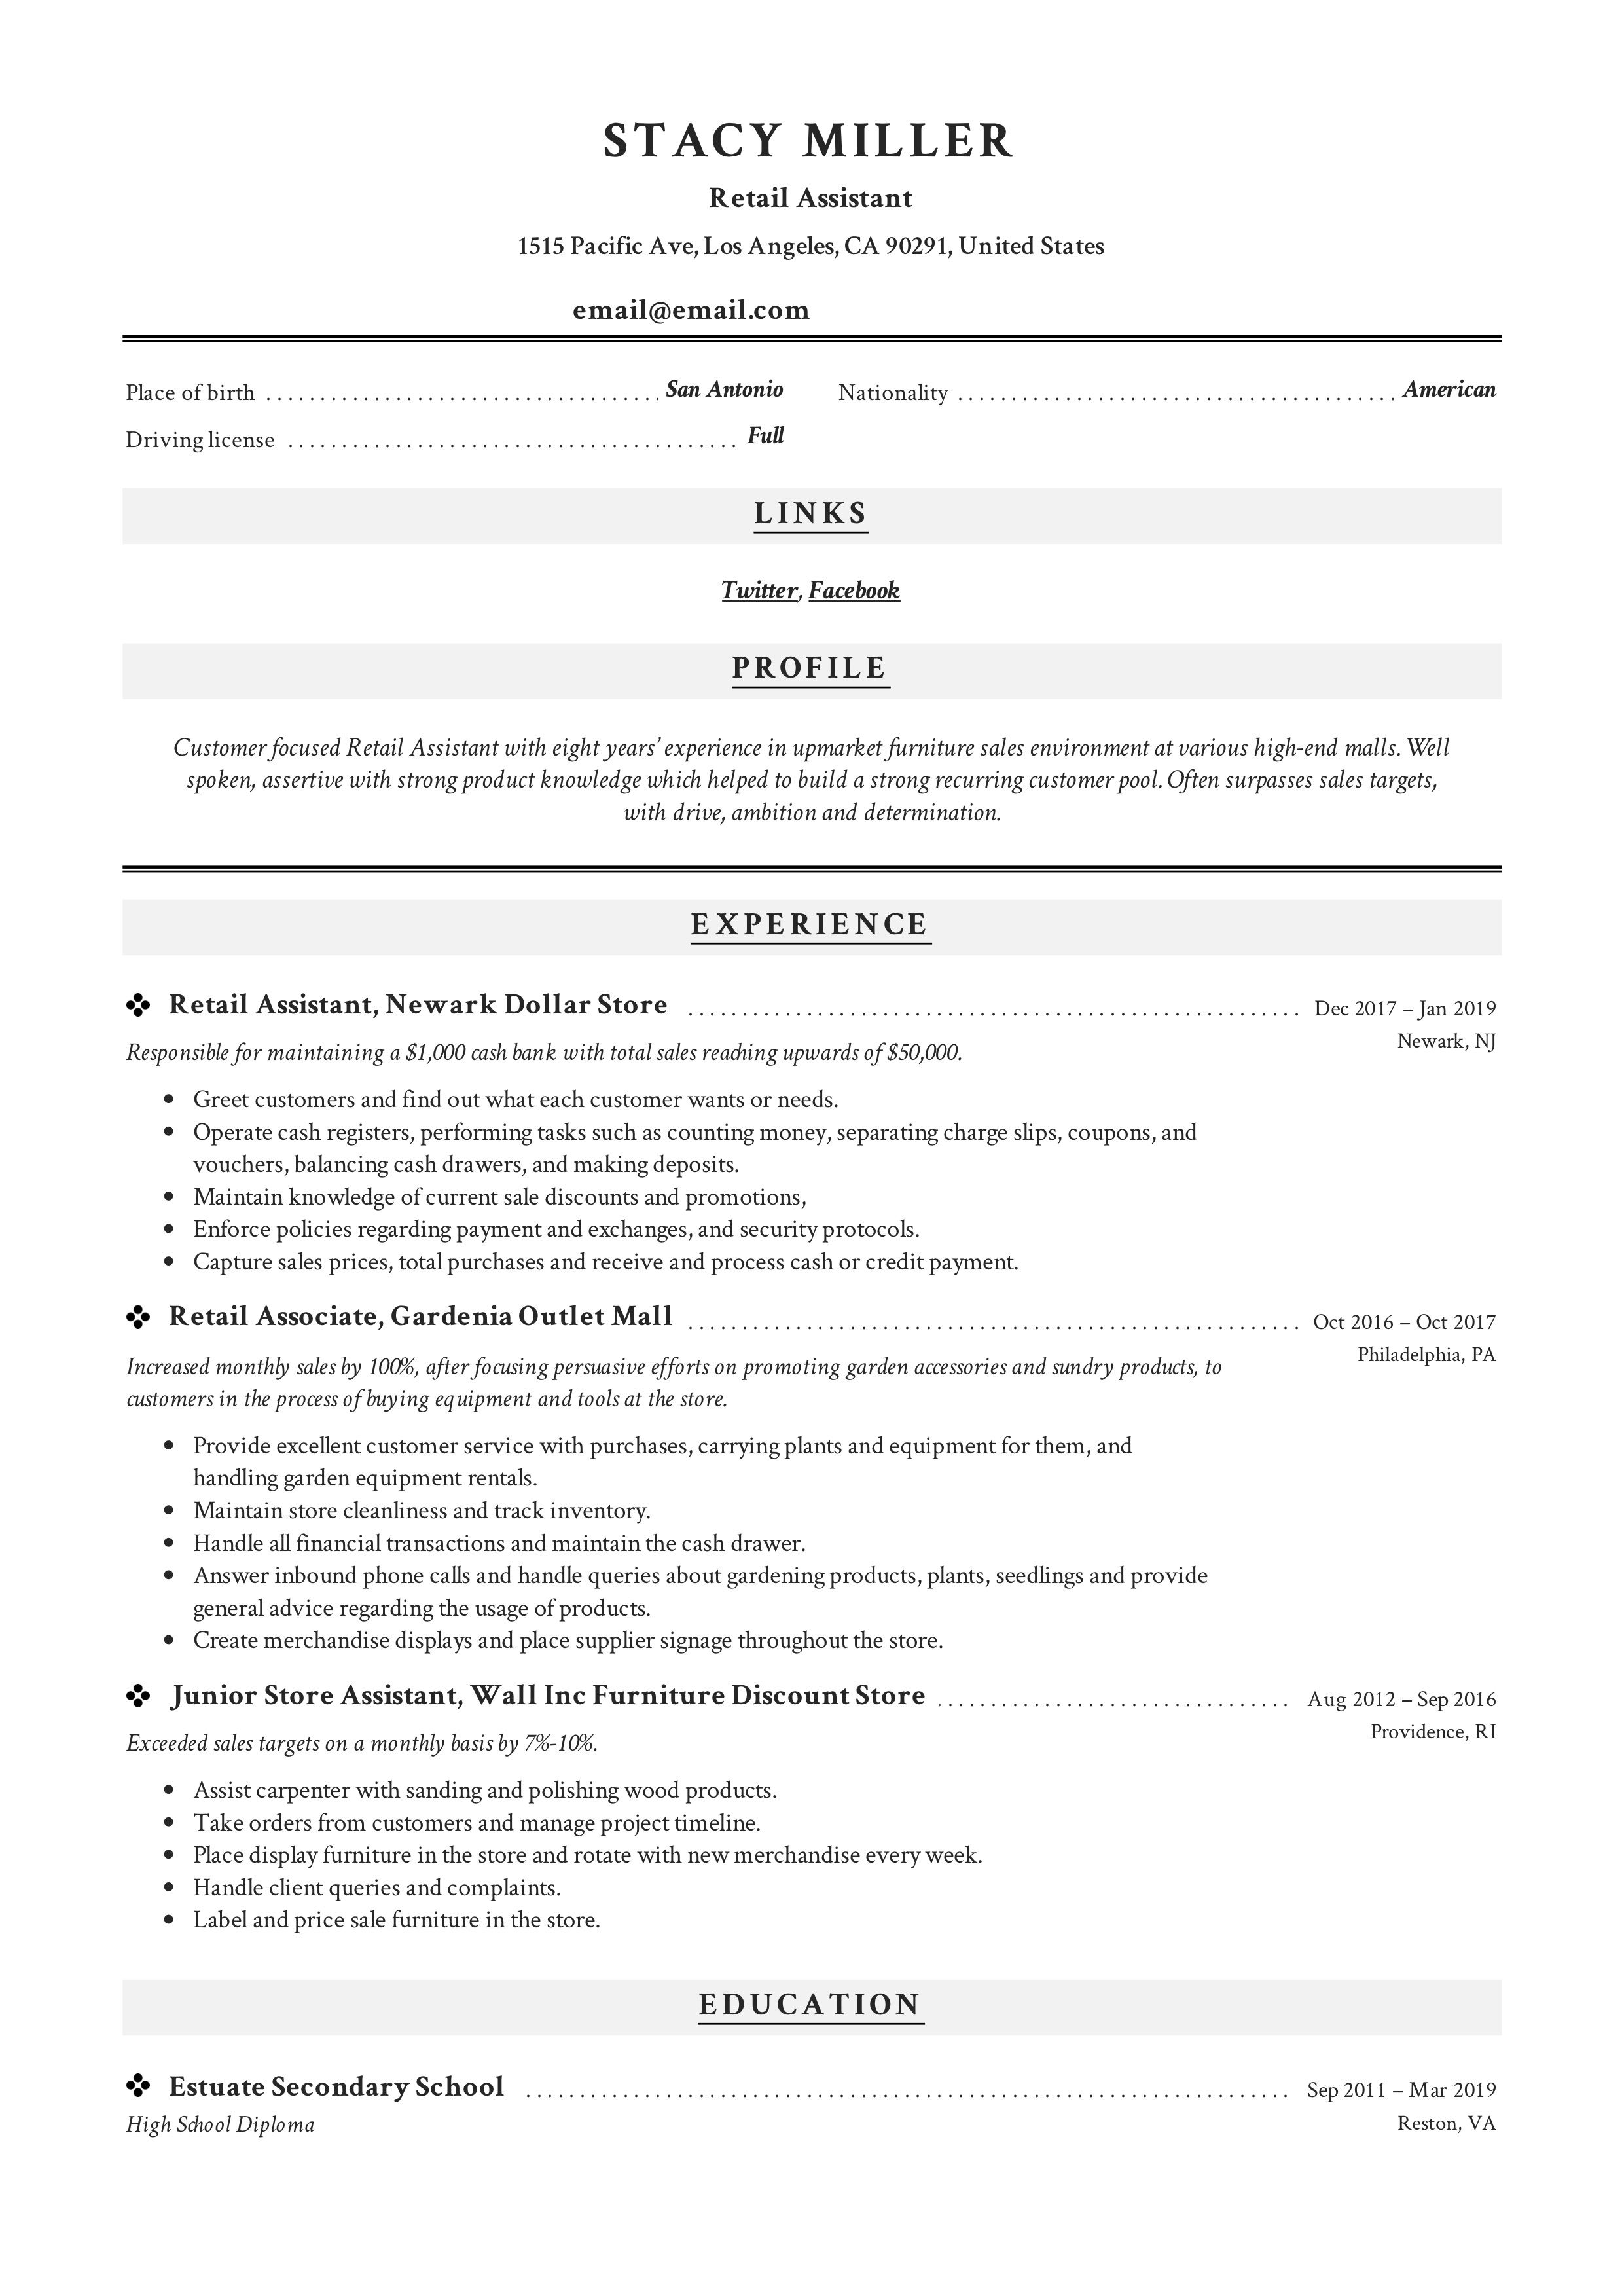 Retail Assistant Resume Sample in 2020 Resume guide